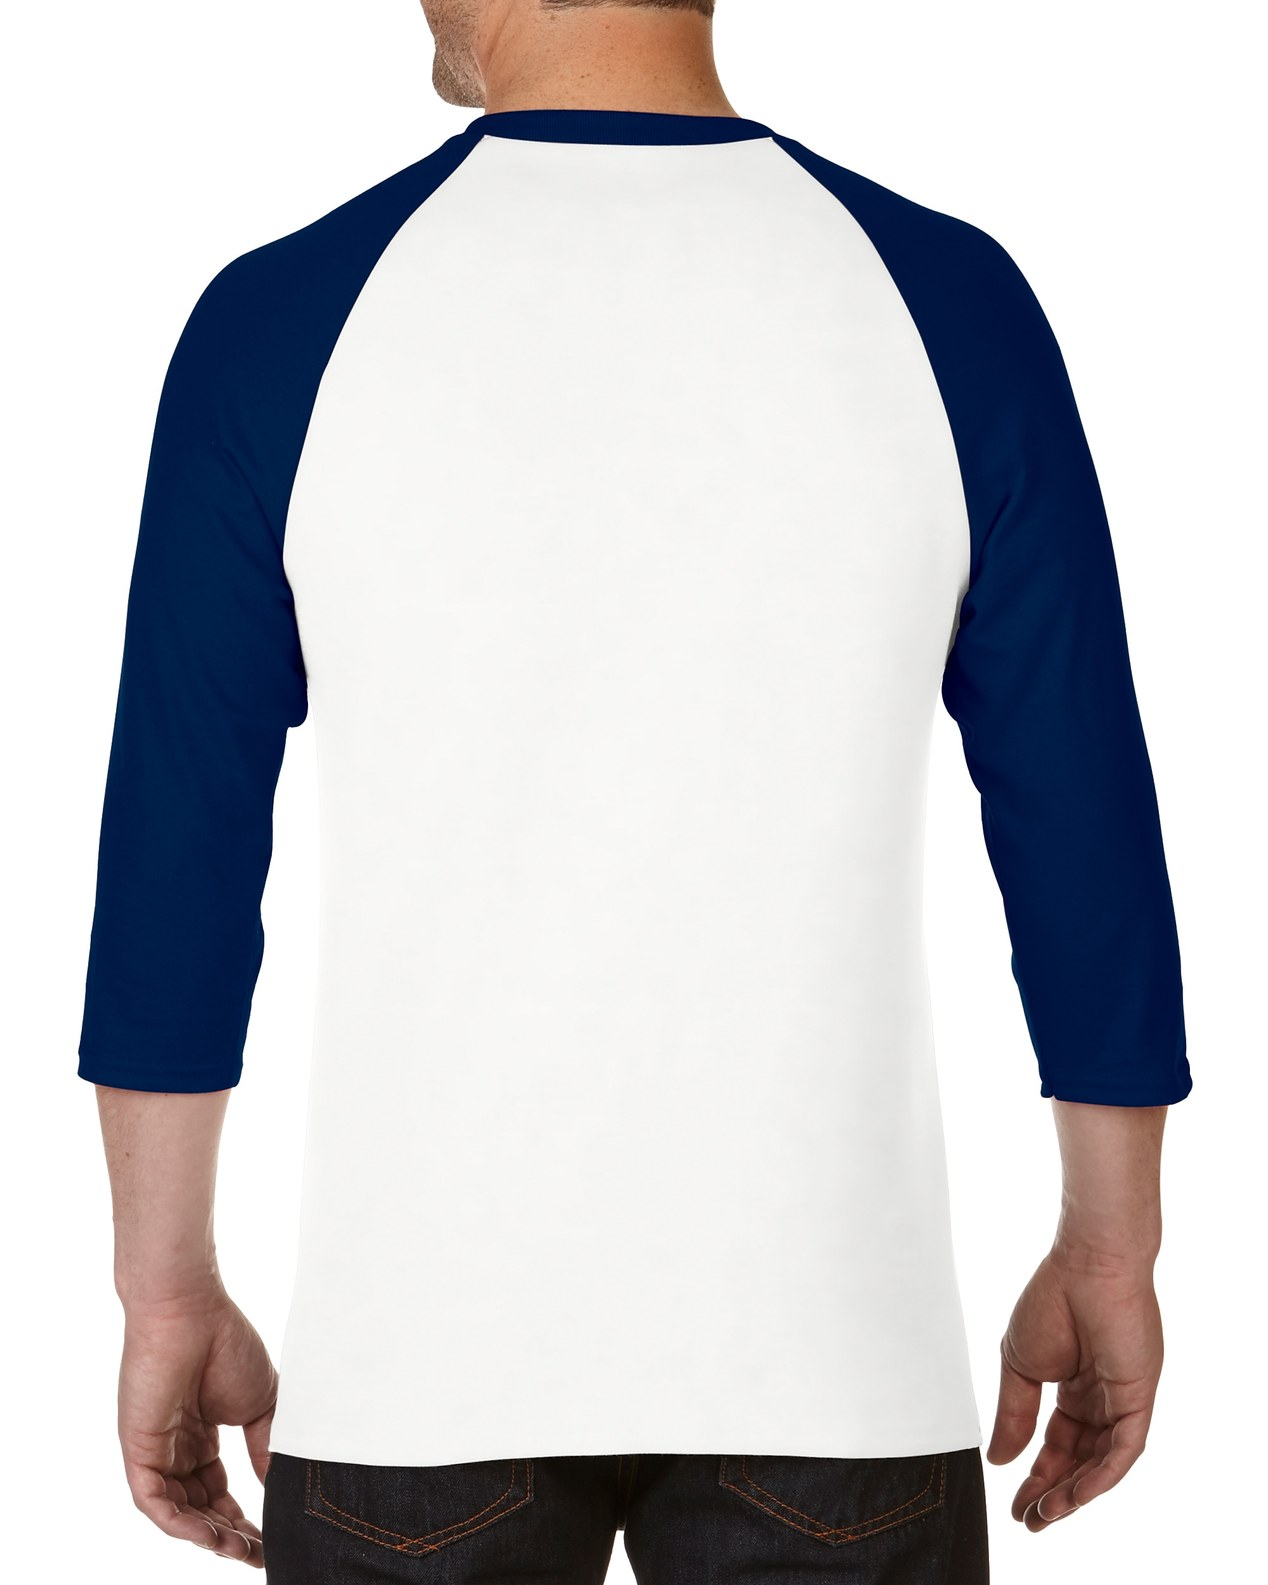 e1dc20f8f957e7 5700 | Gildan® Heavy Cotton™ | 5.3 oz/yd² | Adult 3/4 Raglan T-Shirt ...